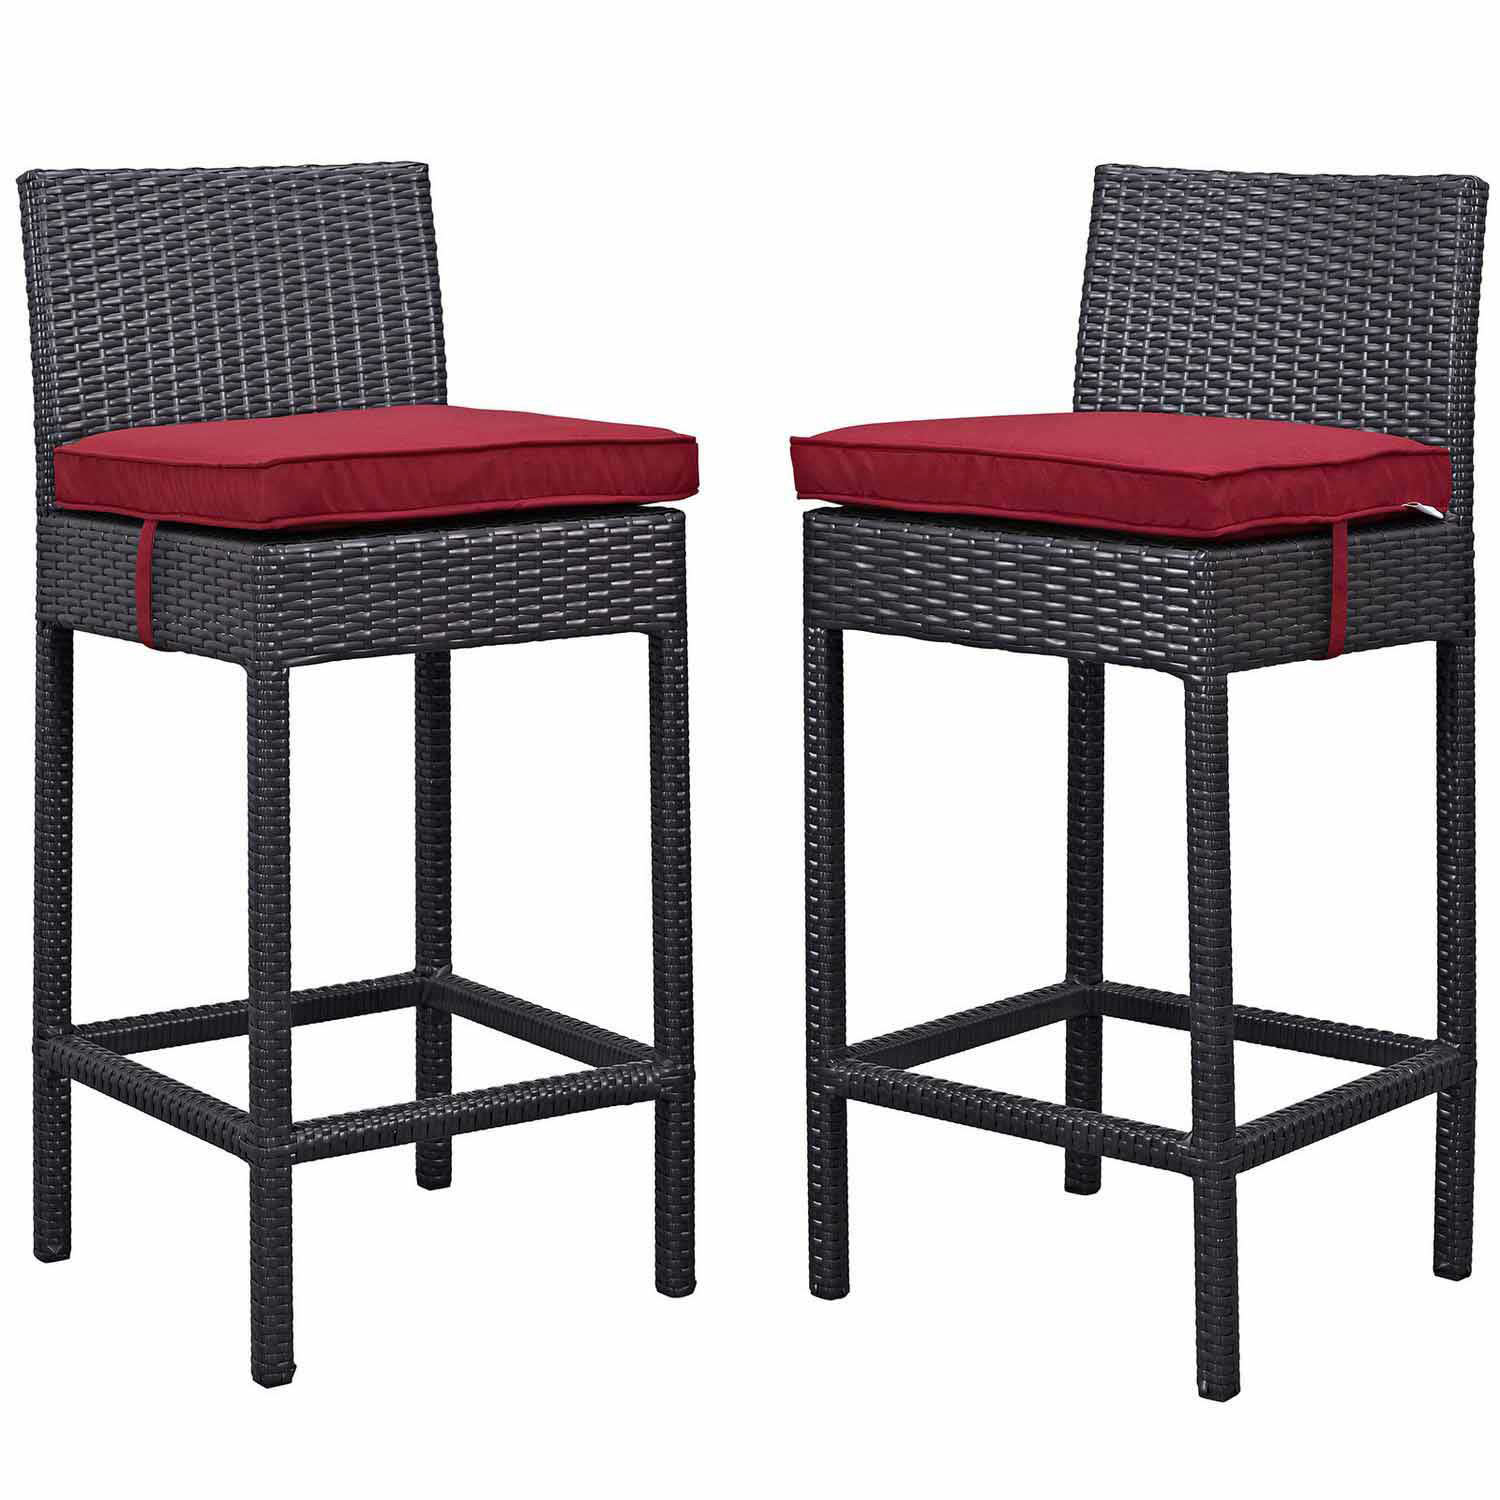 Modway Lift Bar Stool Outdoor Patio Set of 2 - Espresso Red